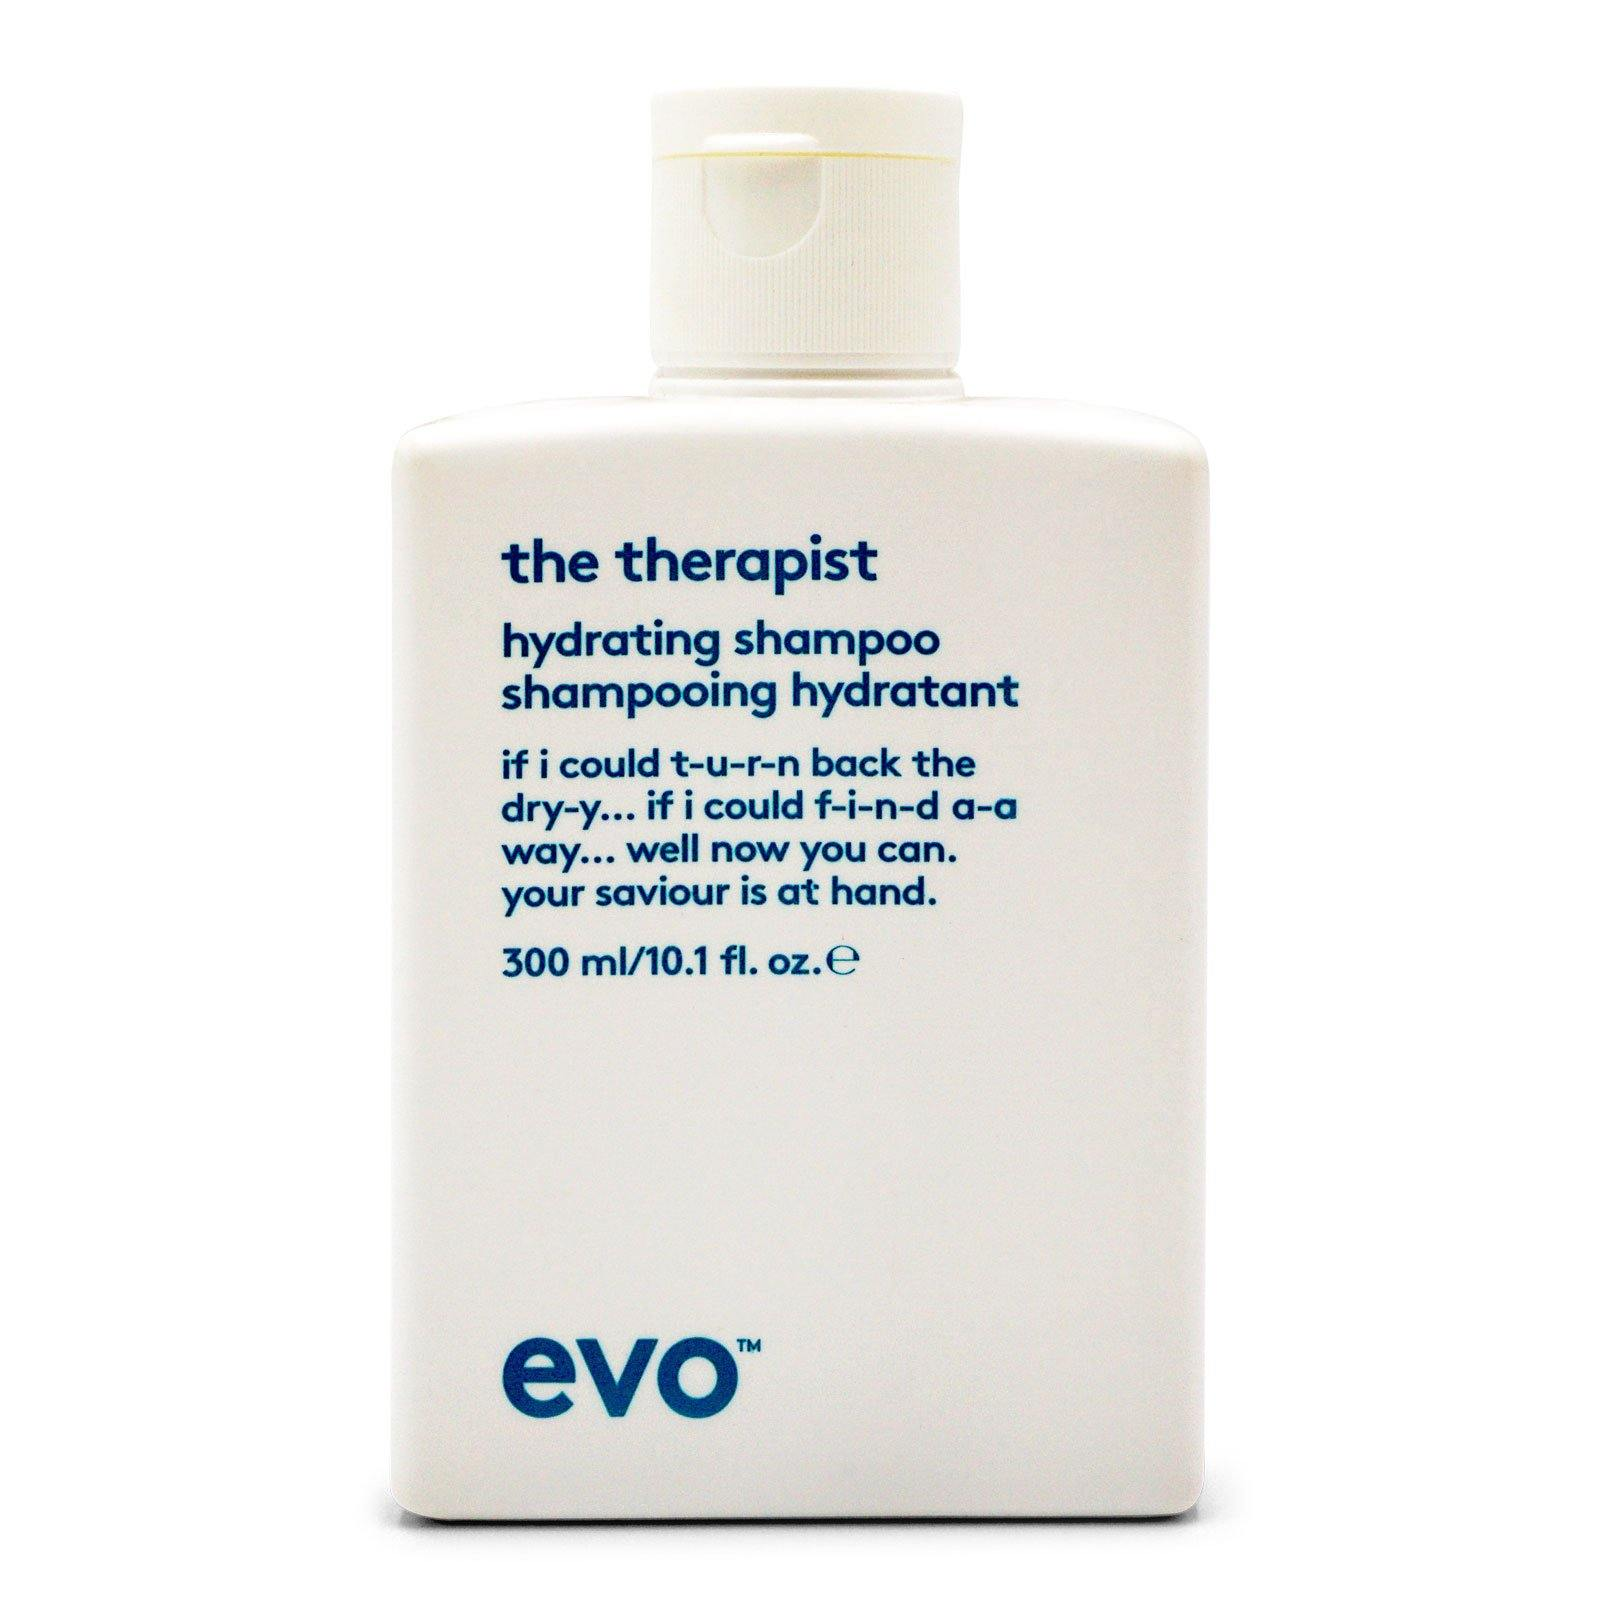 Evo Hair The Therapist Hydrating Shampoo Cleanse, Moisturise And Strengthen Hair - (10.1oz/300ml) (3/cs)